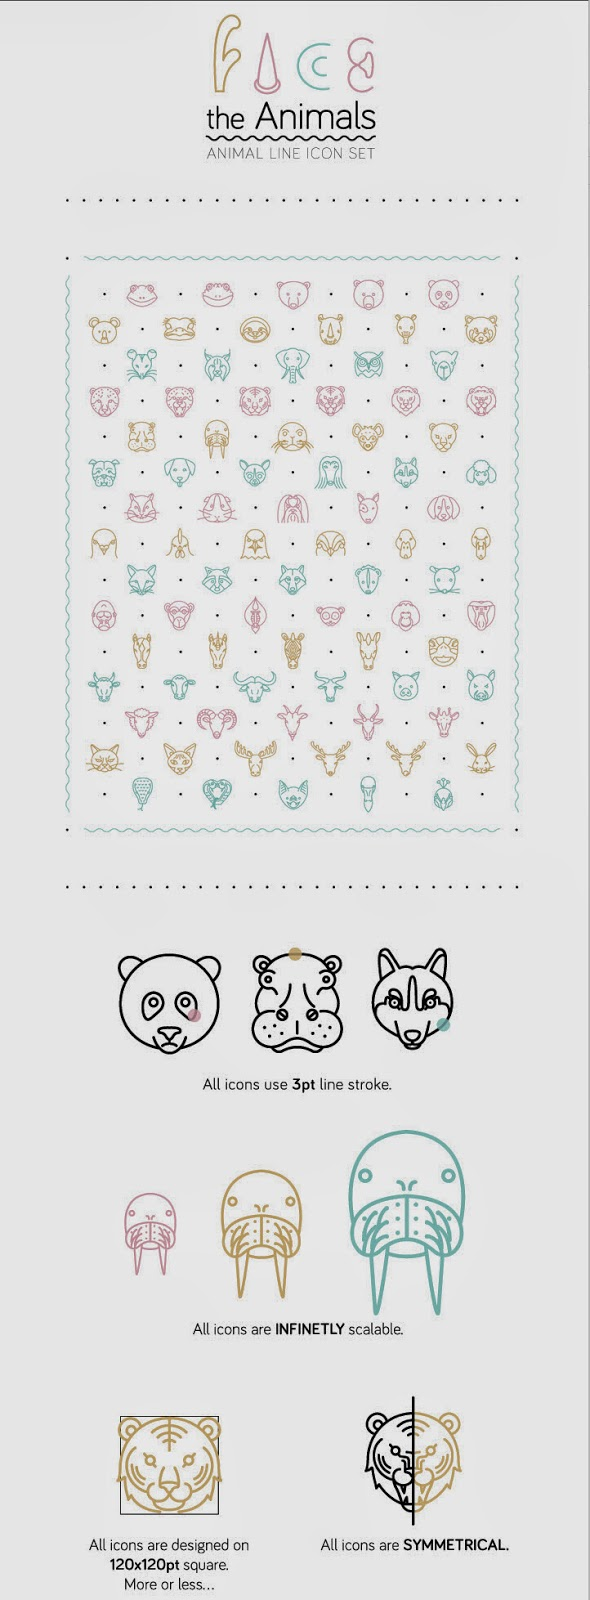 Face the Animals: Animal Line Icon Set